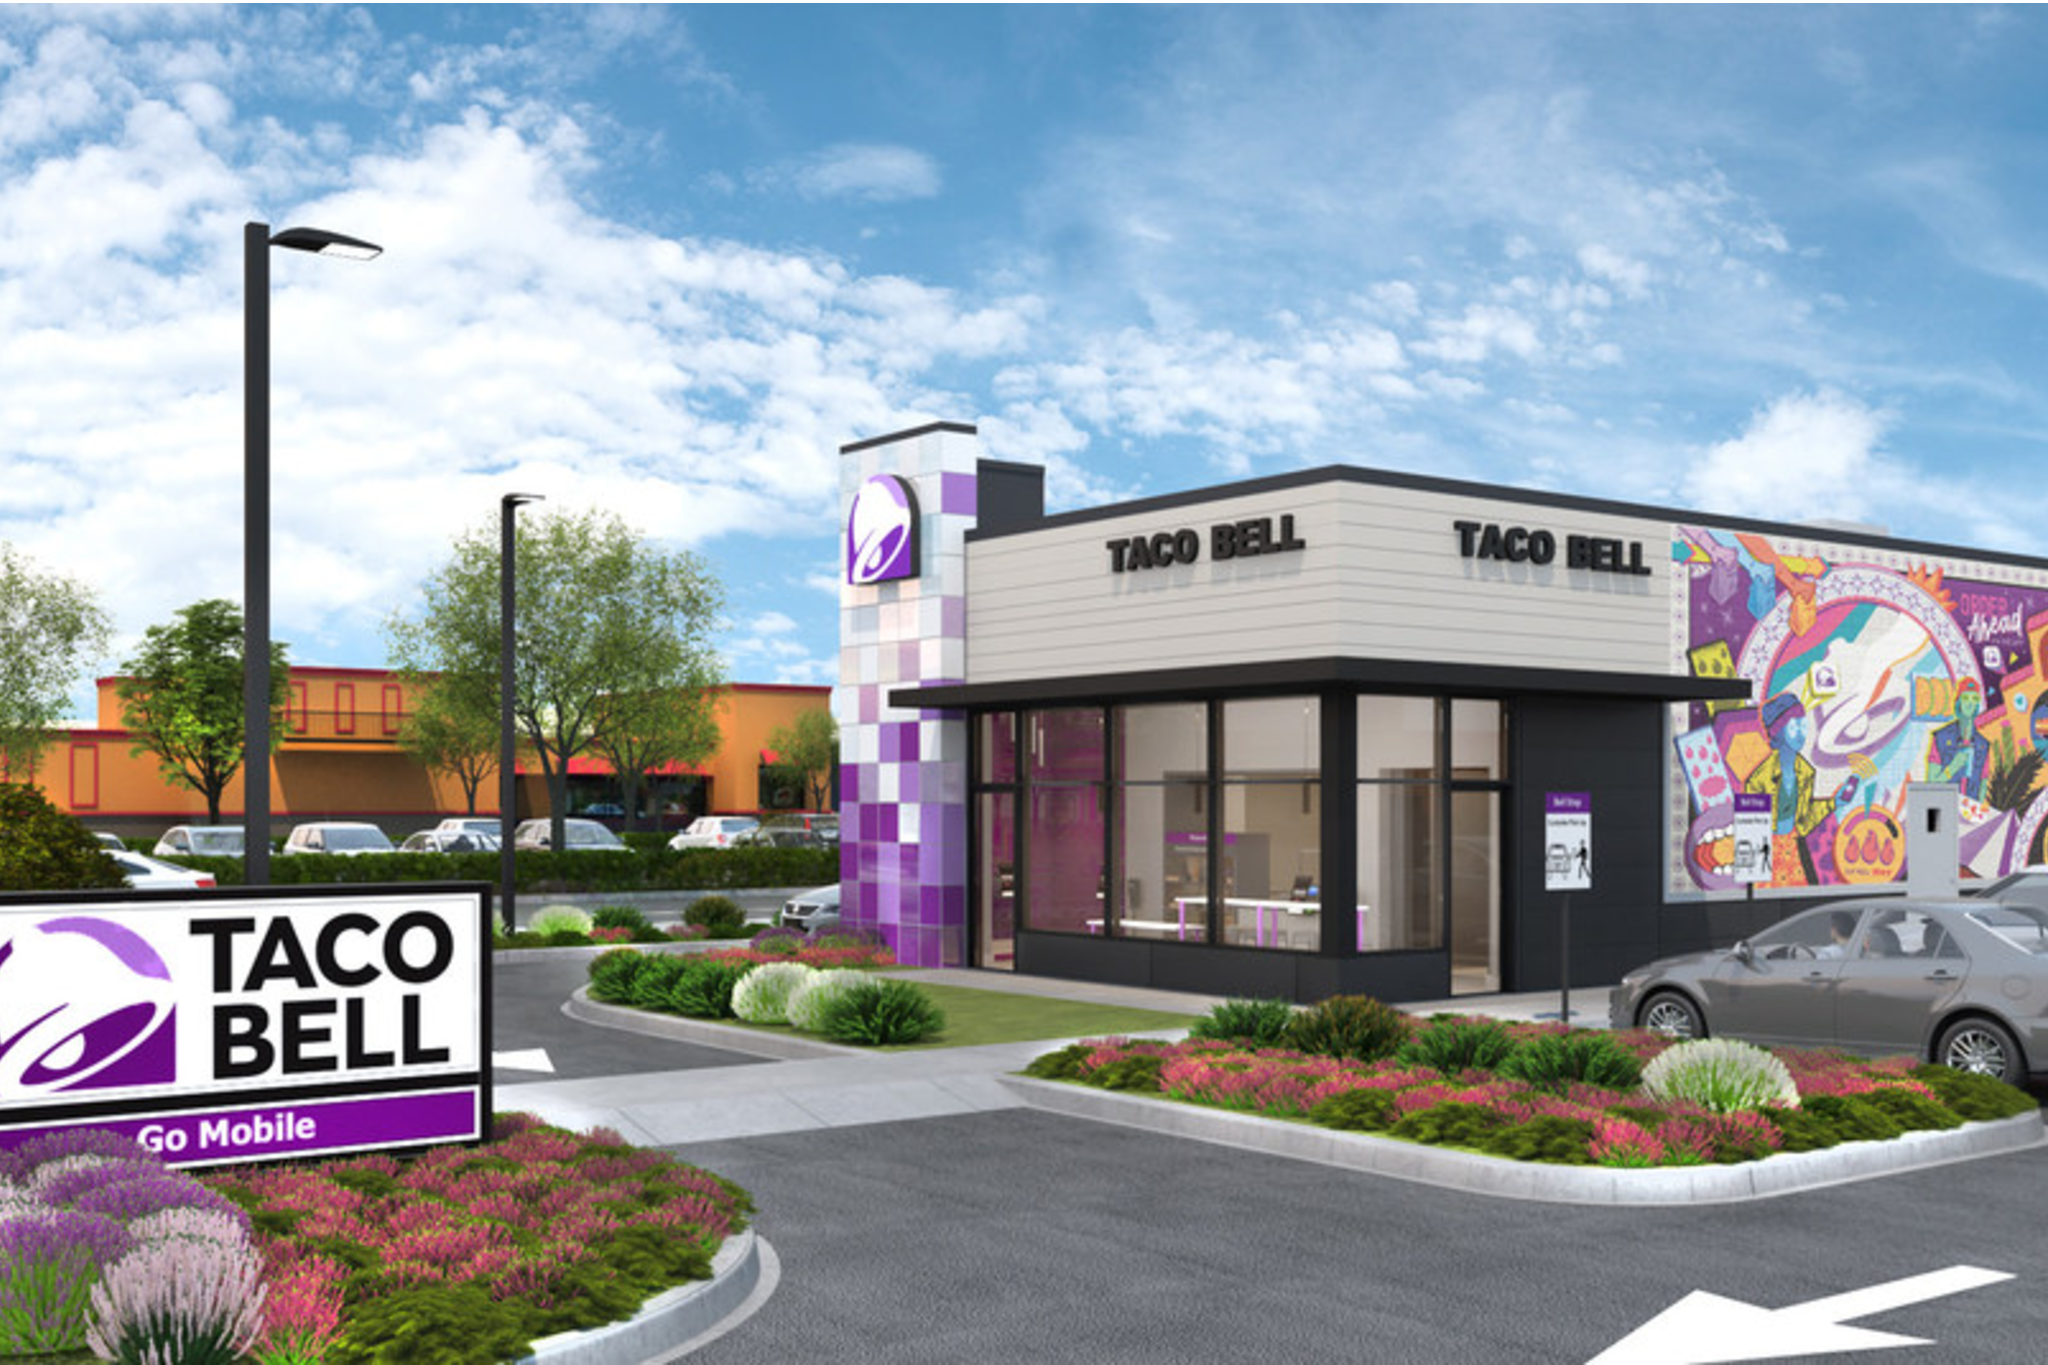 taco bell of the future